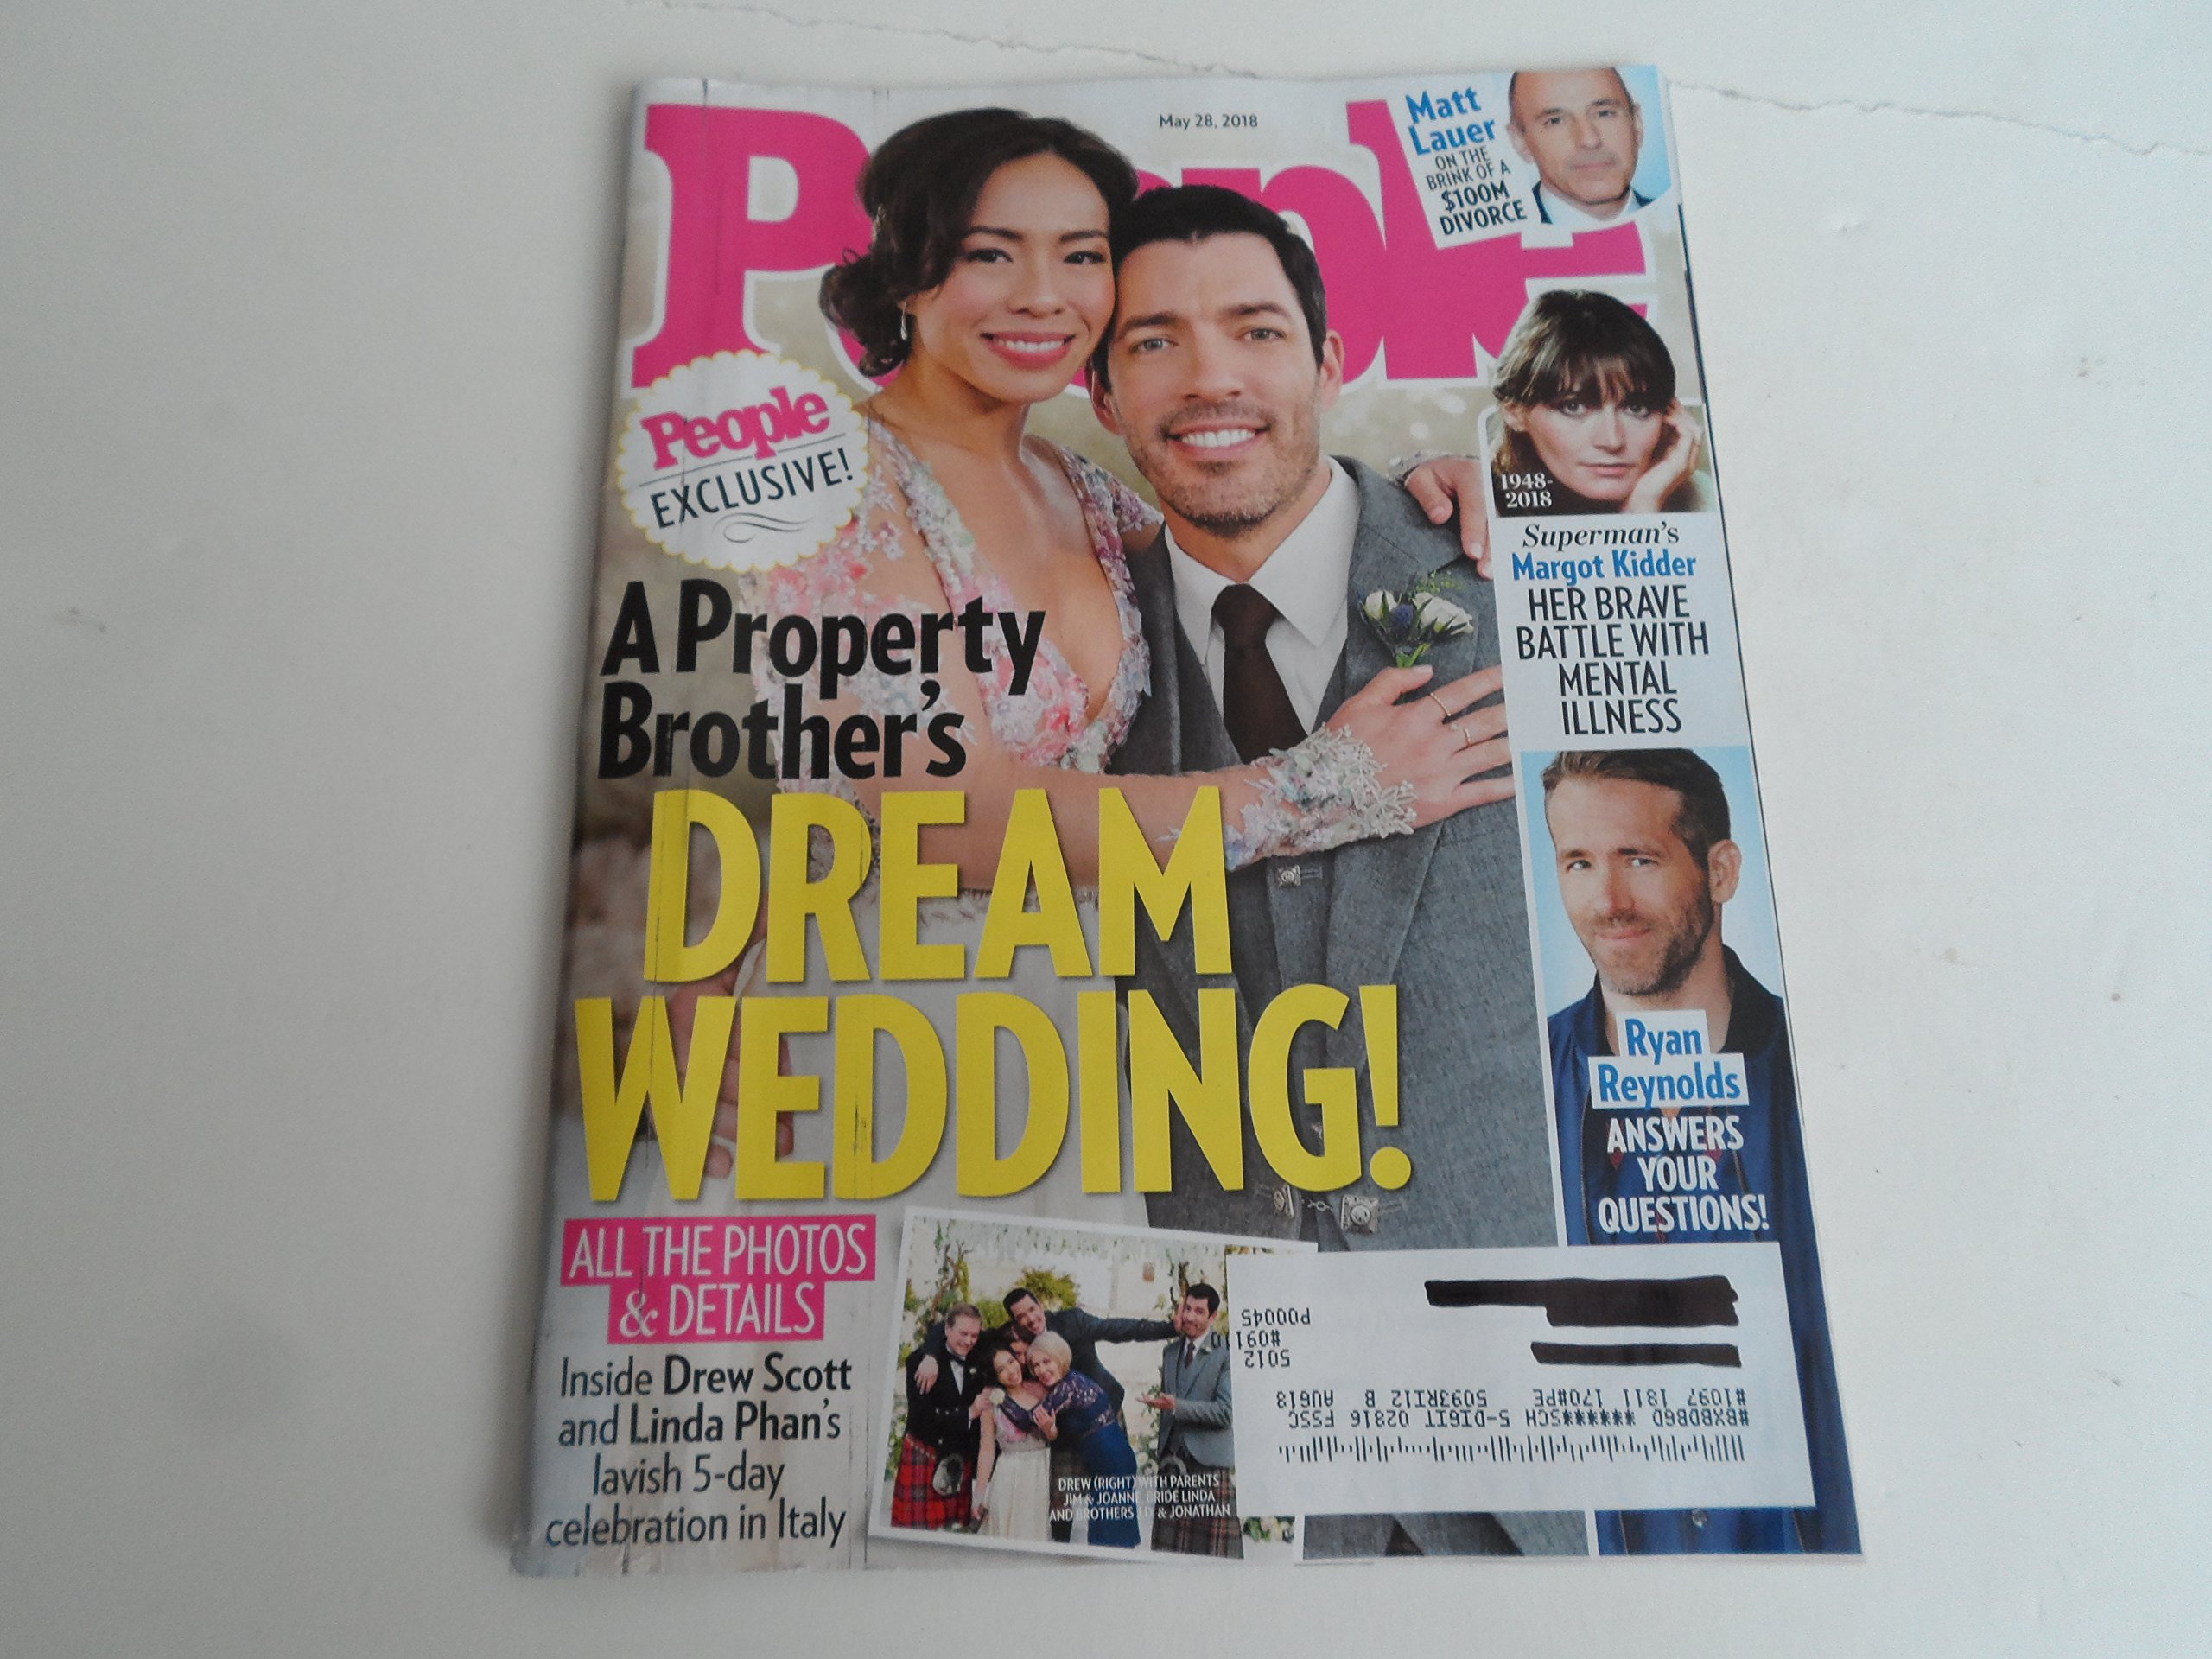 Property Brothers Wedding.People May 28 2018 Drew Scott A Property Brother S Dream Wedding